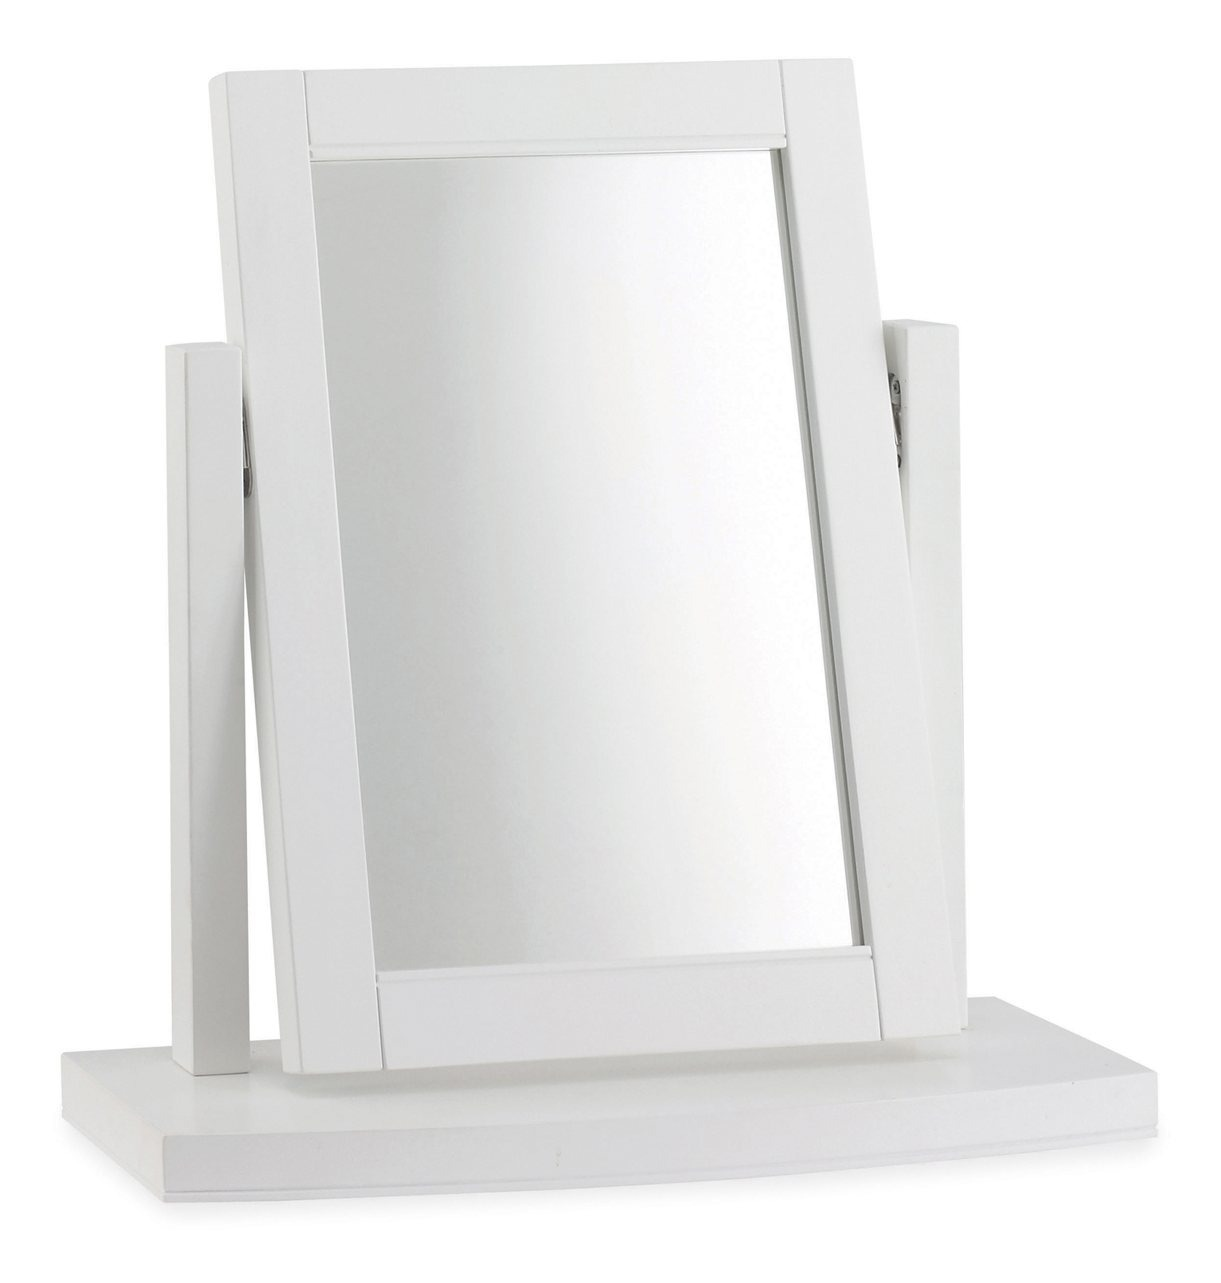 KYRA WHITE BEDROOM MIRROR - L54cm x D18cm x H52cm